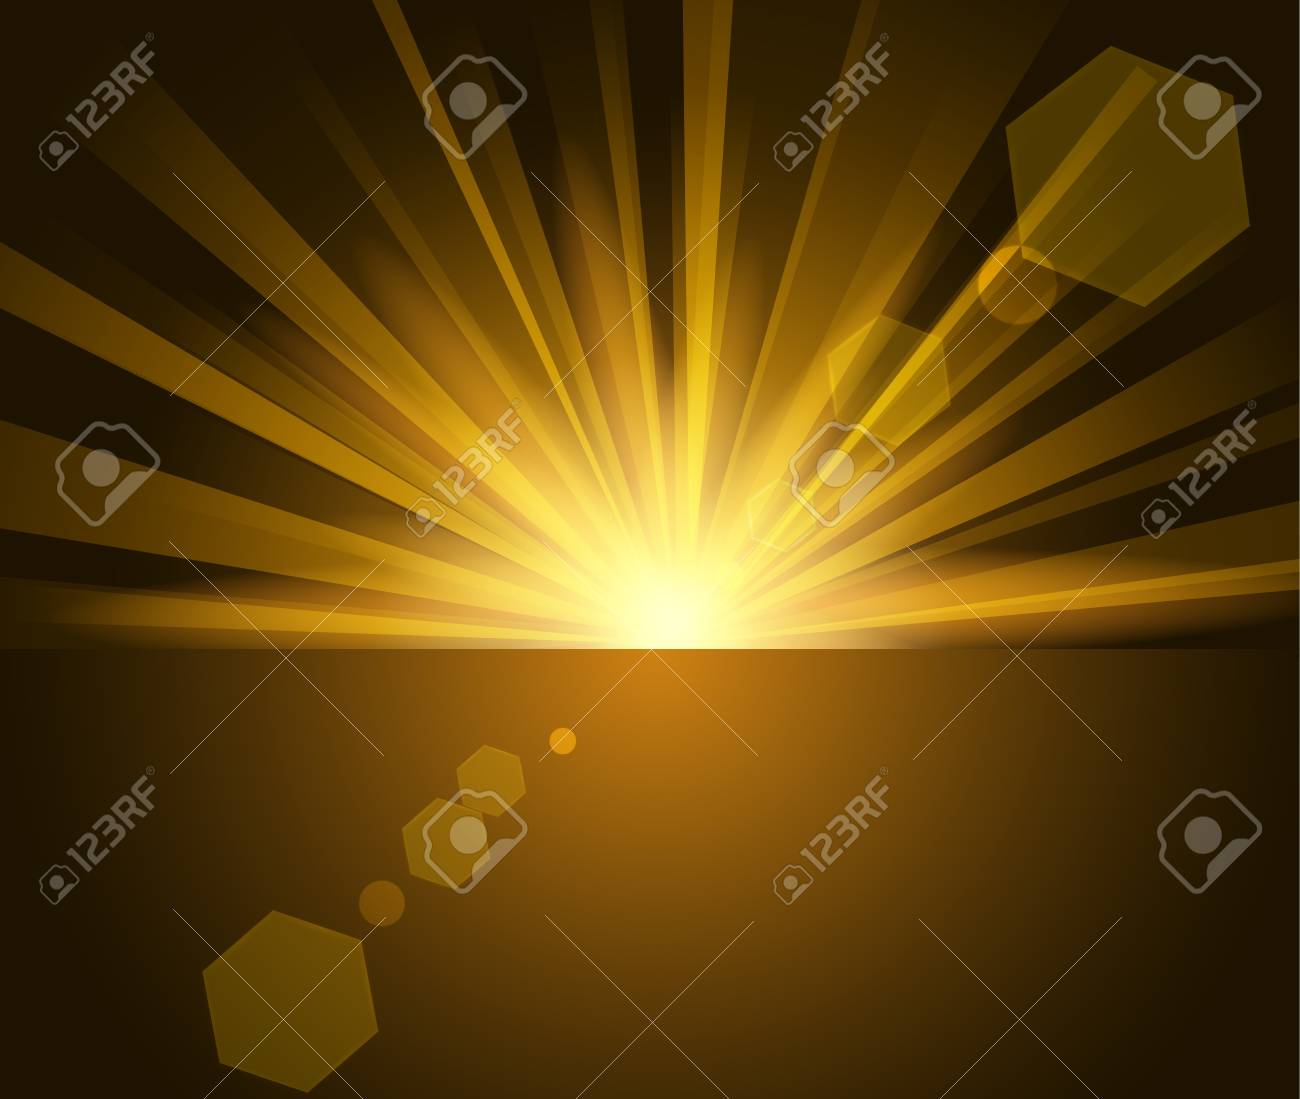 golden rays rising from horizon in dark background stock vector 61611095